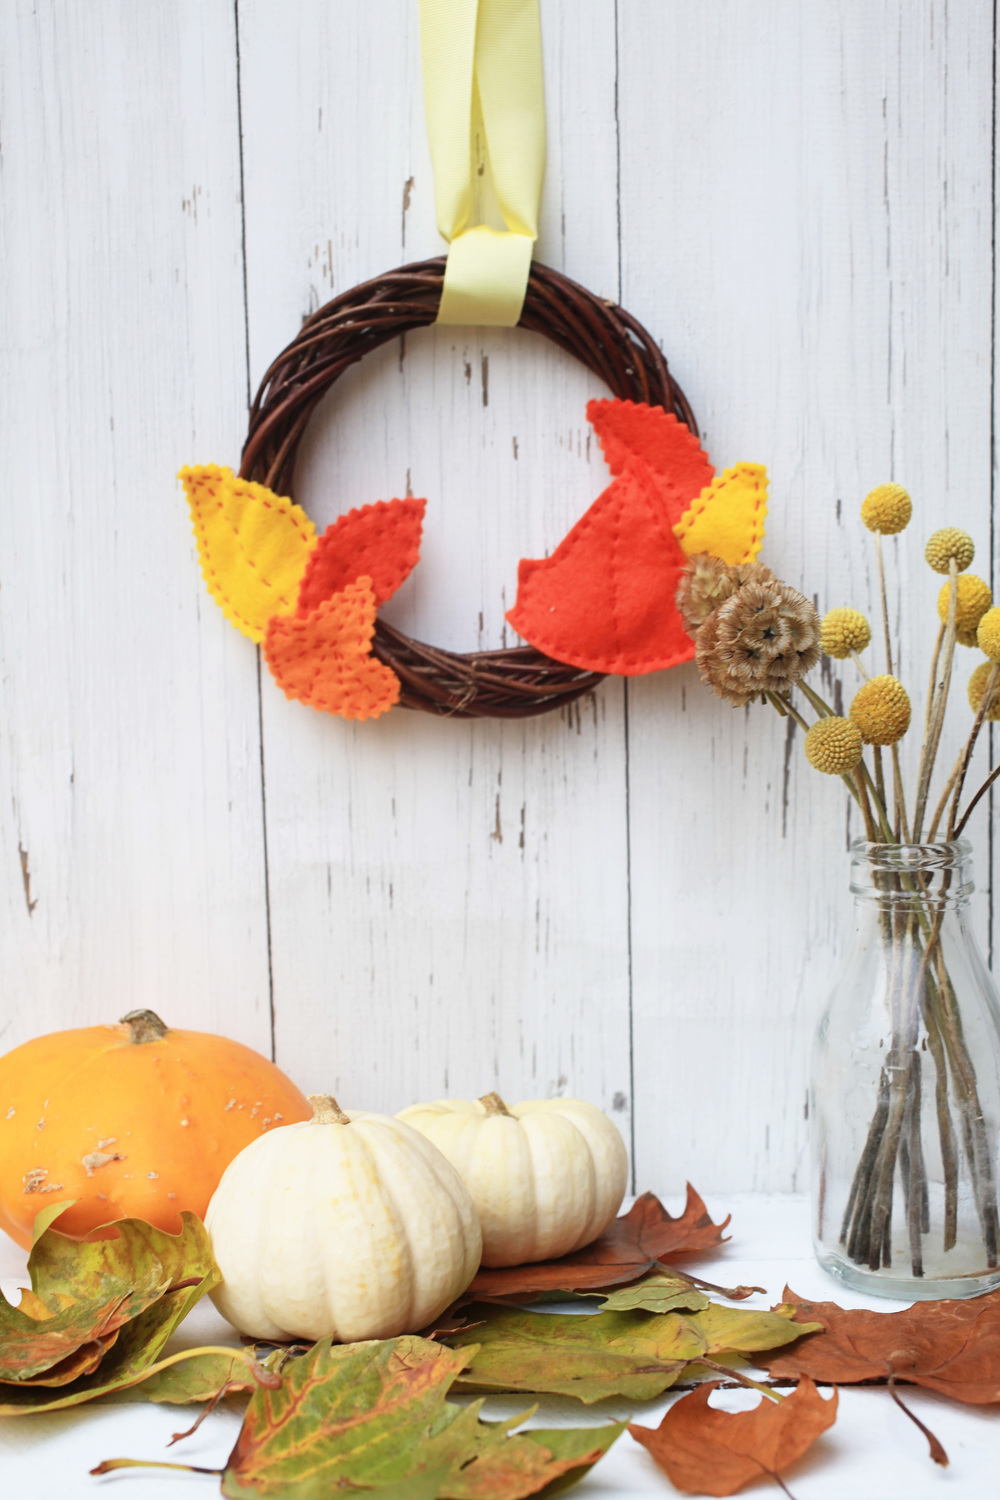 autumnwreath 010.jpg